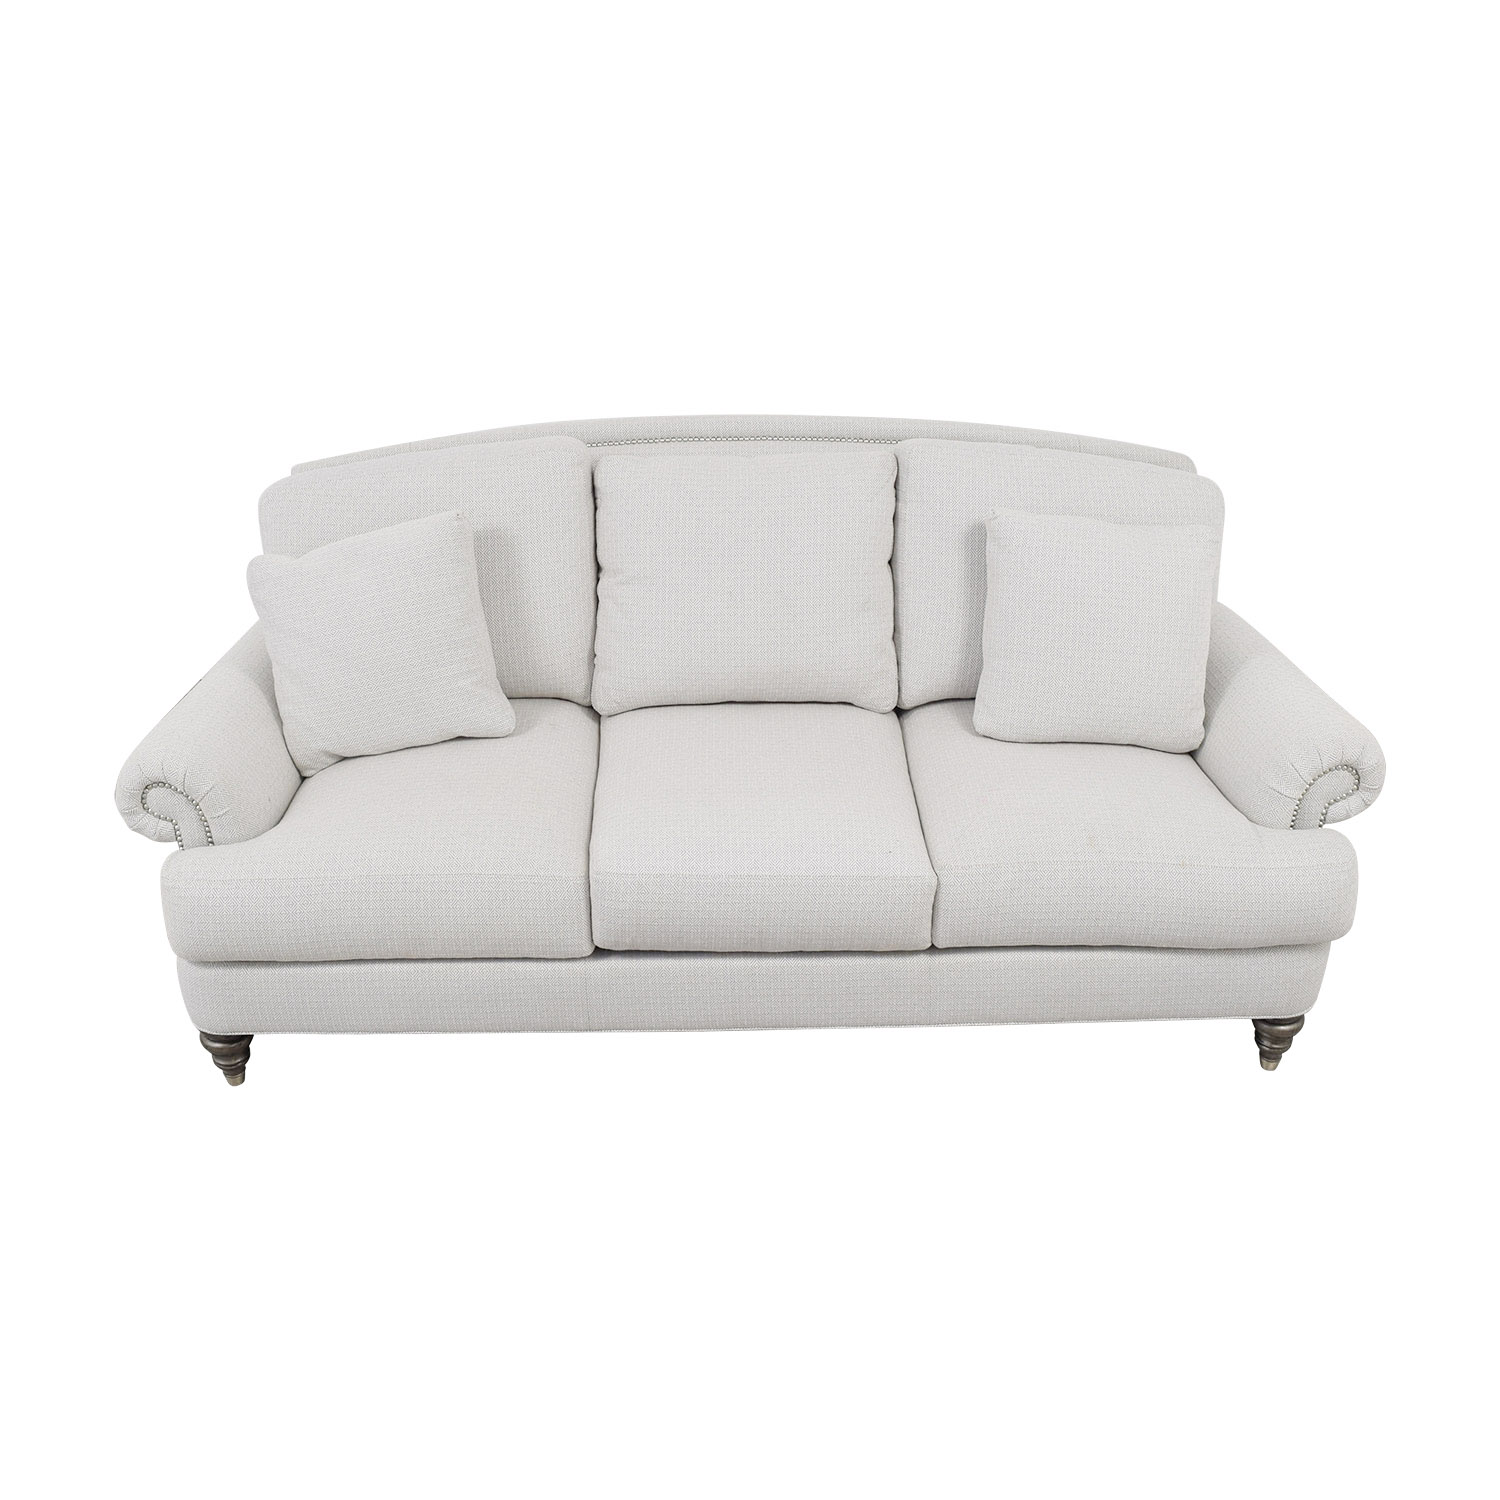 Ethan Allen Ethan Allen Hyde White Three-Cushion Sofa Sofas